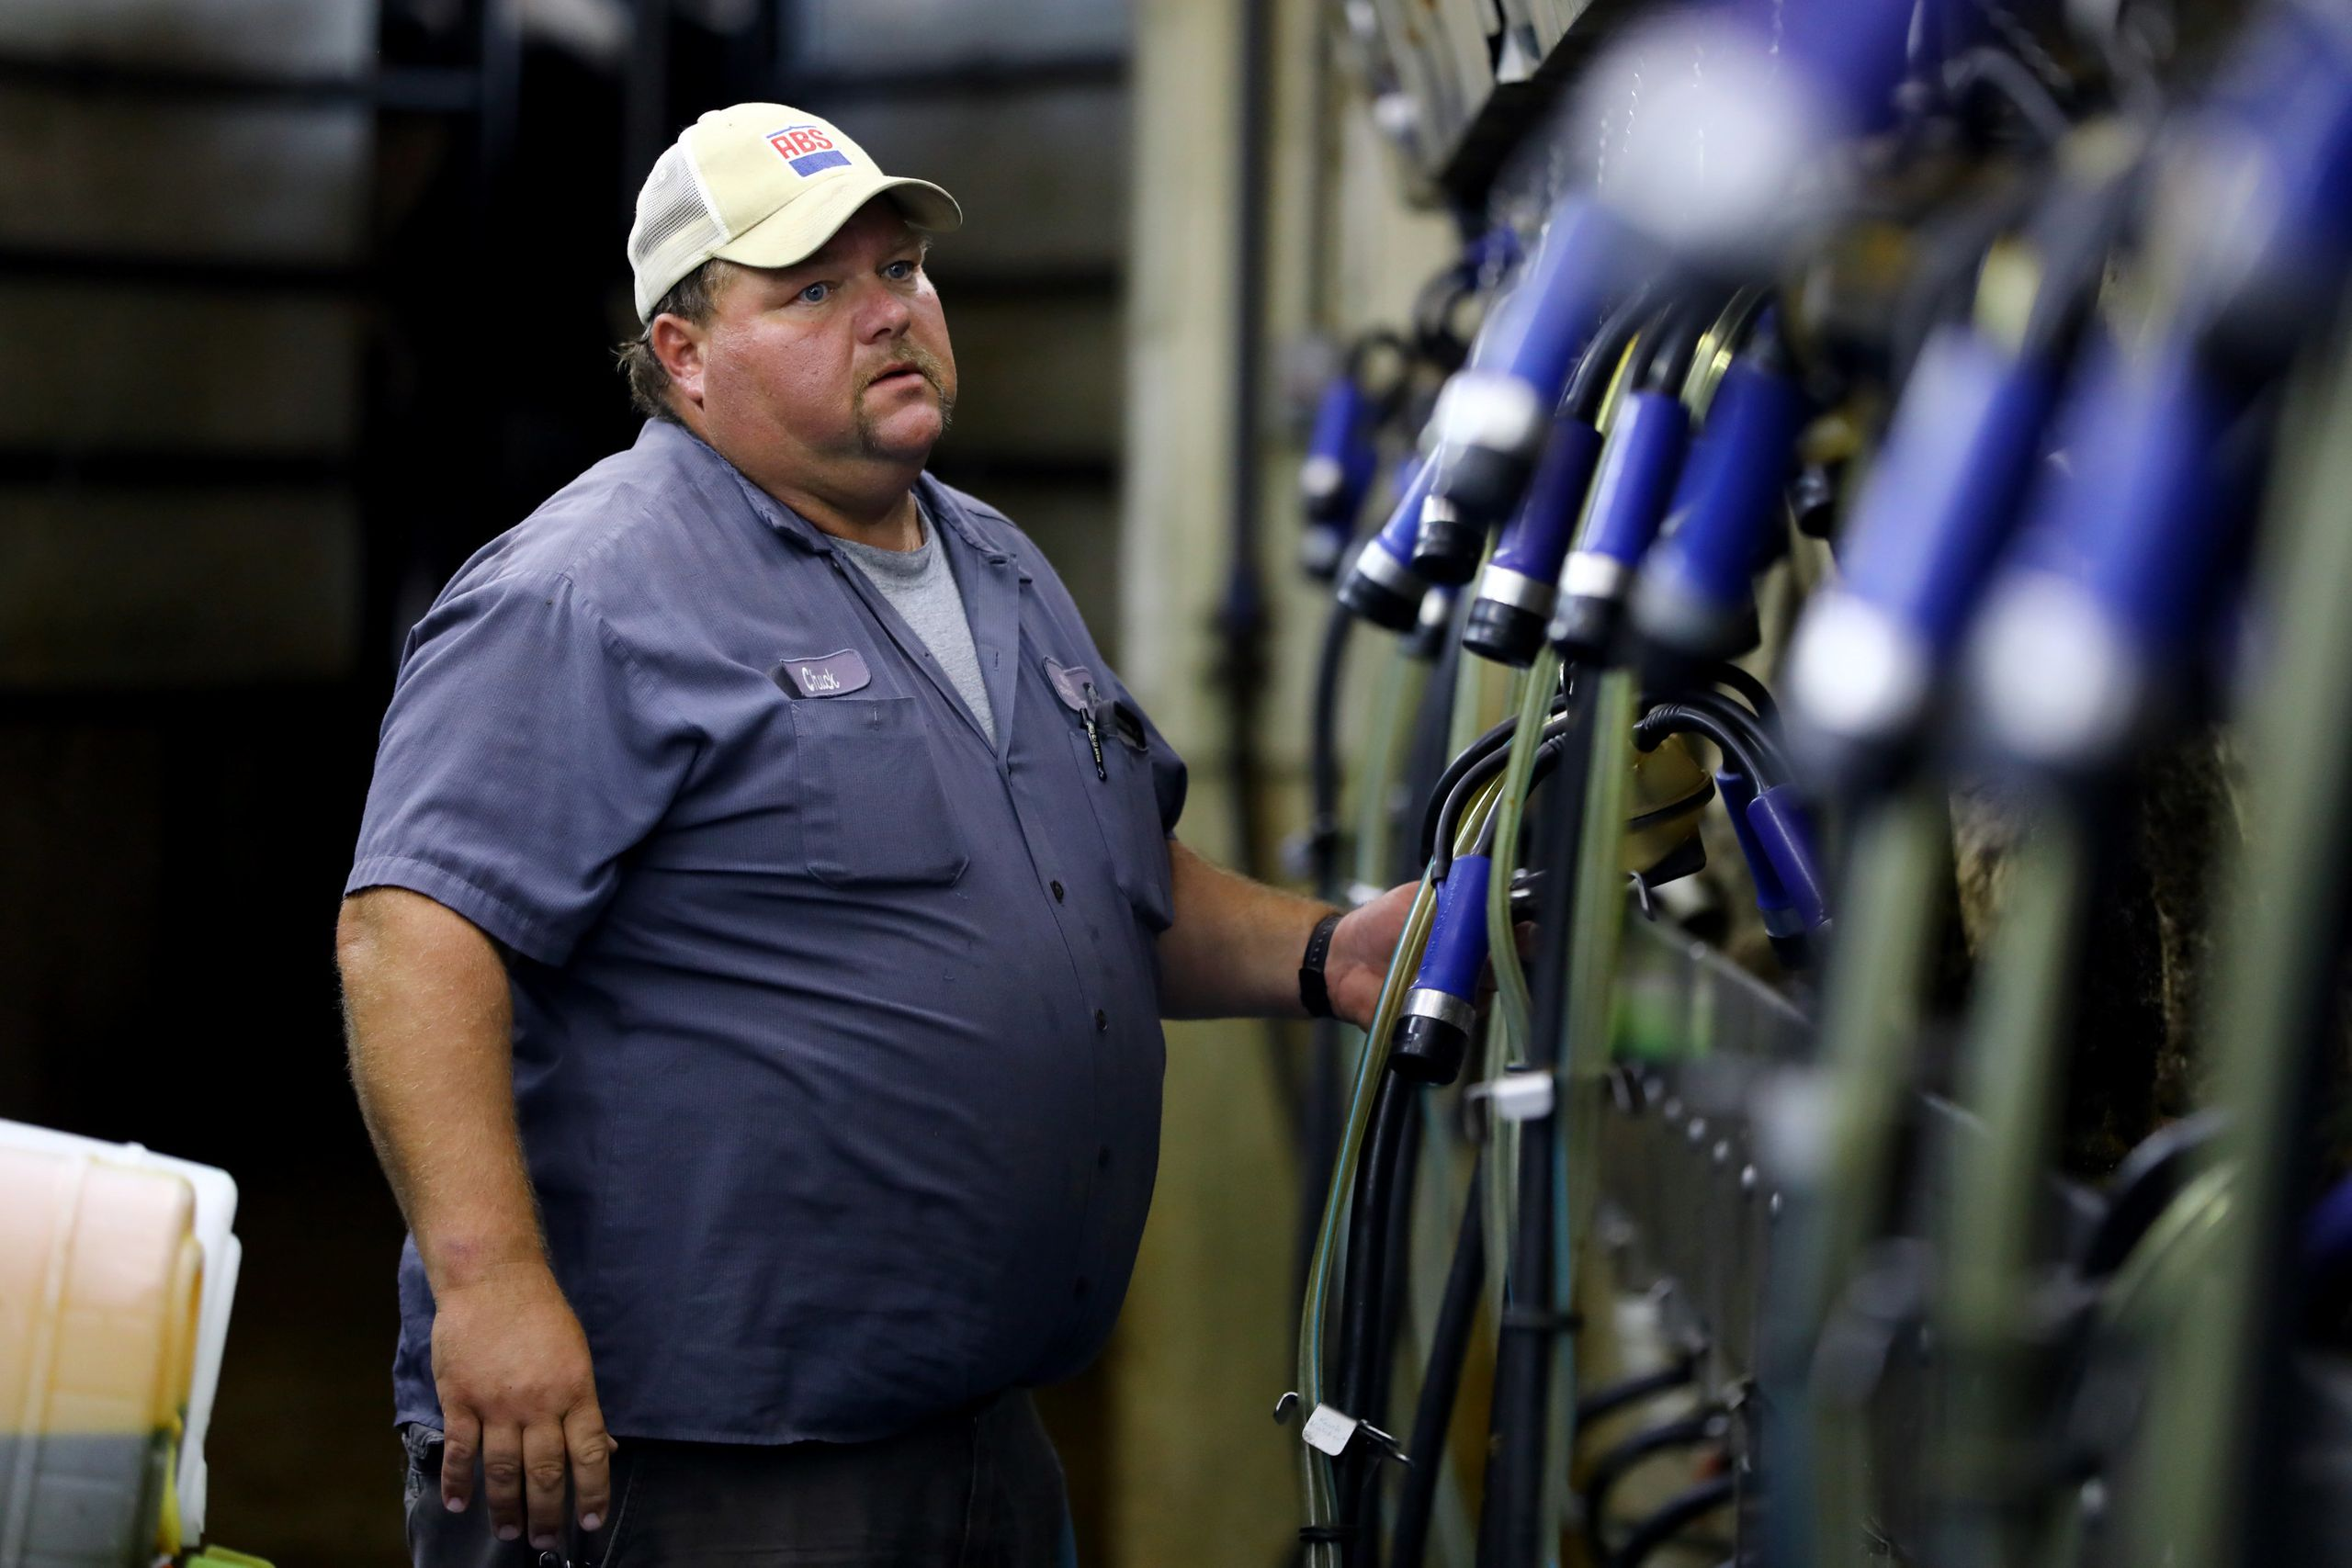 Chuck Ripp troubleshoots a machine in the milking parlor at his farm, Ripp's Dairy Valley, in Dane, Wisconsin, Sept. 12, 2017